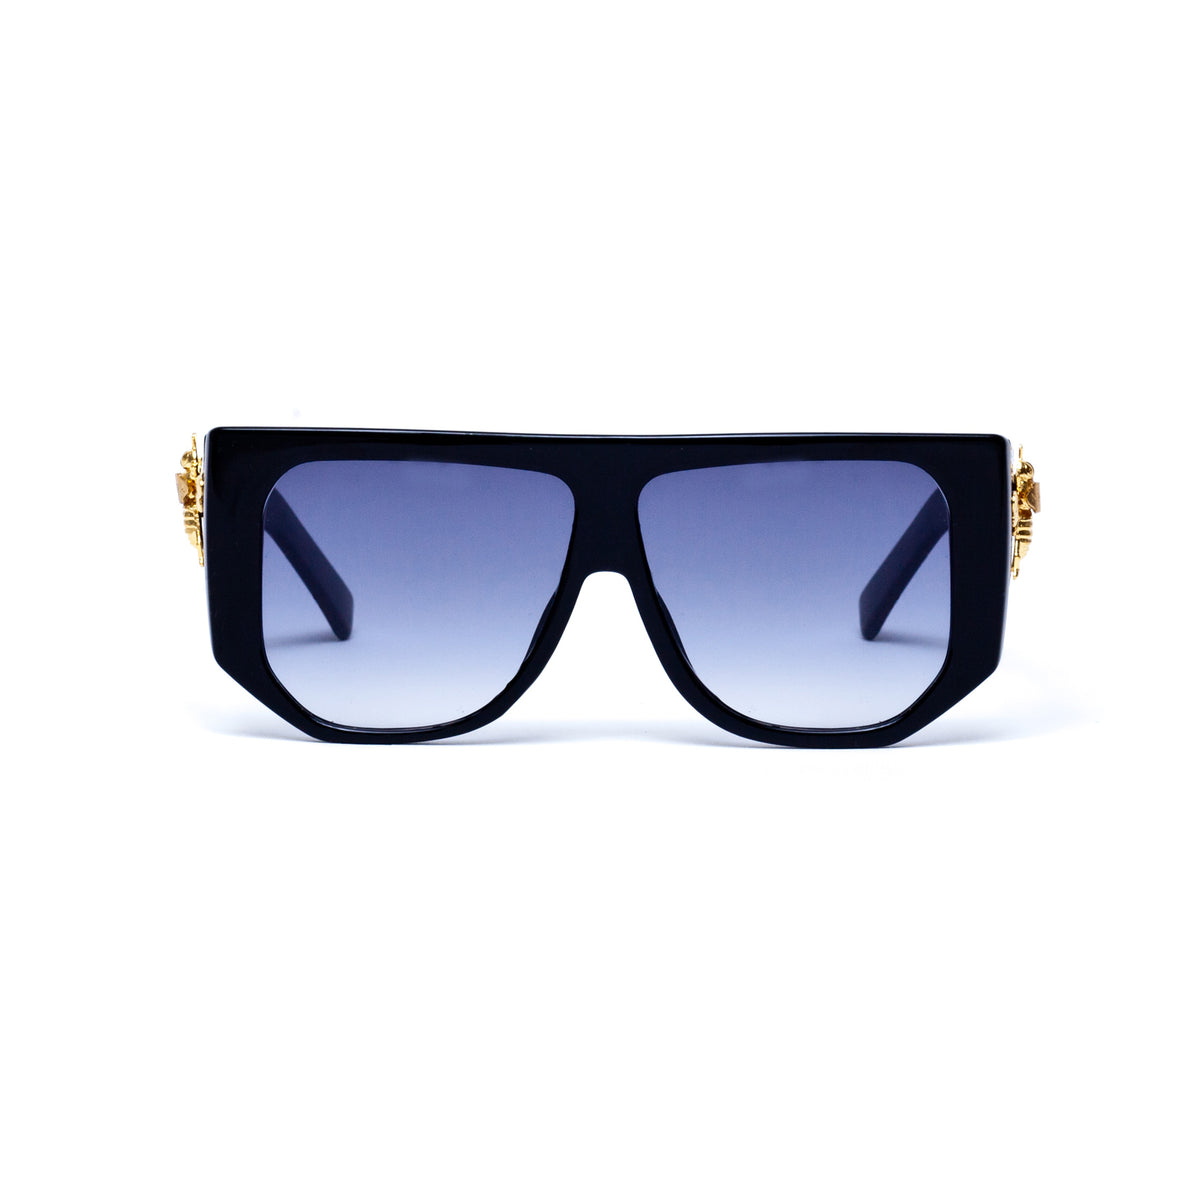 POWER MOVES 2.0  SUNNIES + OPTICS Sunglasses Collection, Tnemnroda man- NRODA